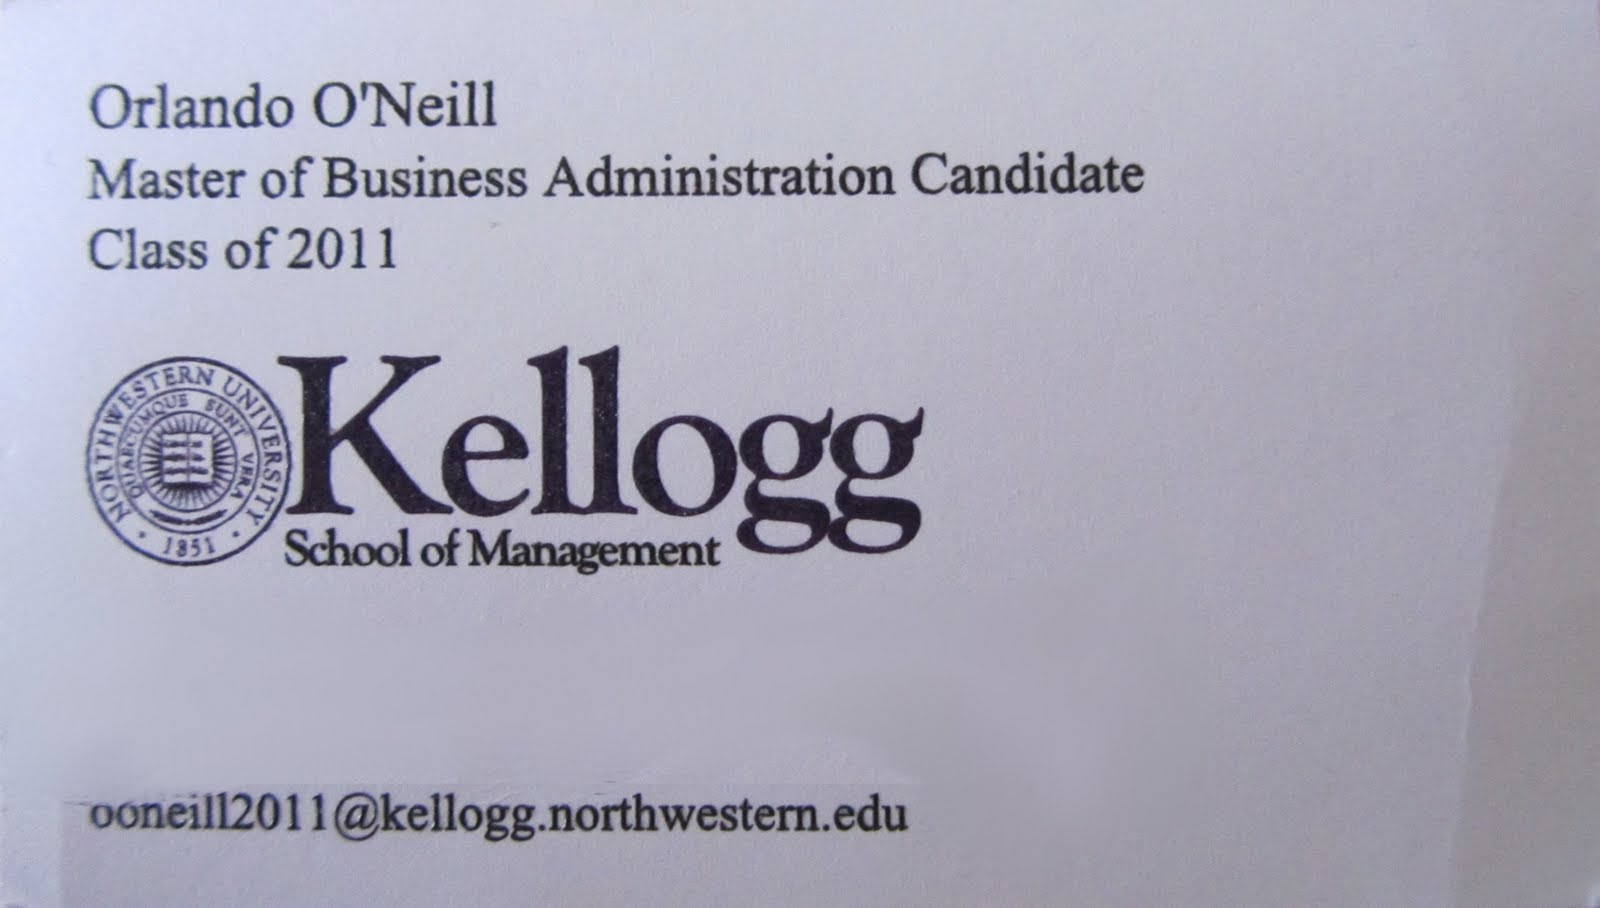 kellogg mba class of 2011 networking post kellogg my personal note the awesome job i did of removing my personal information